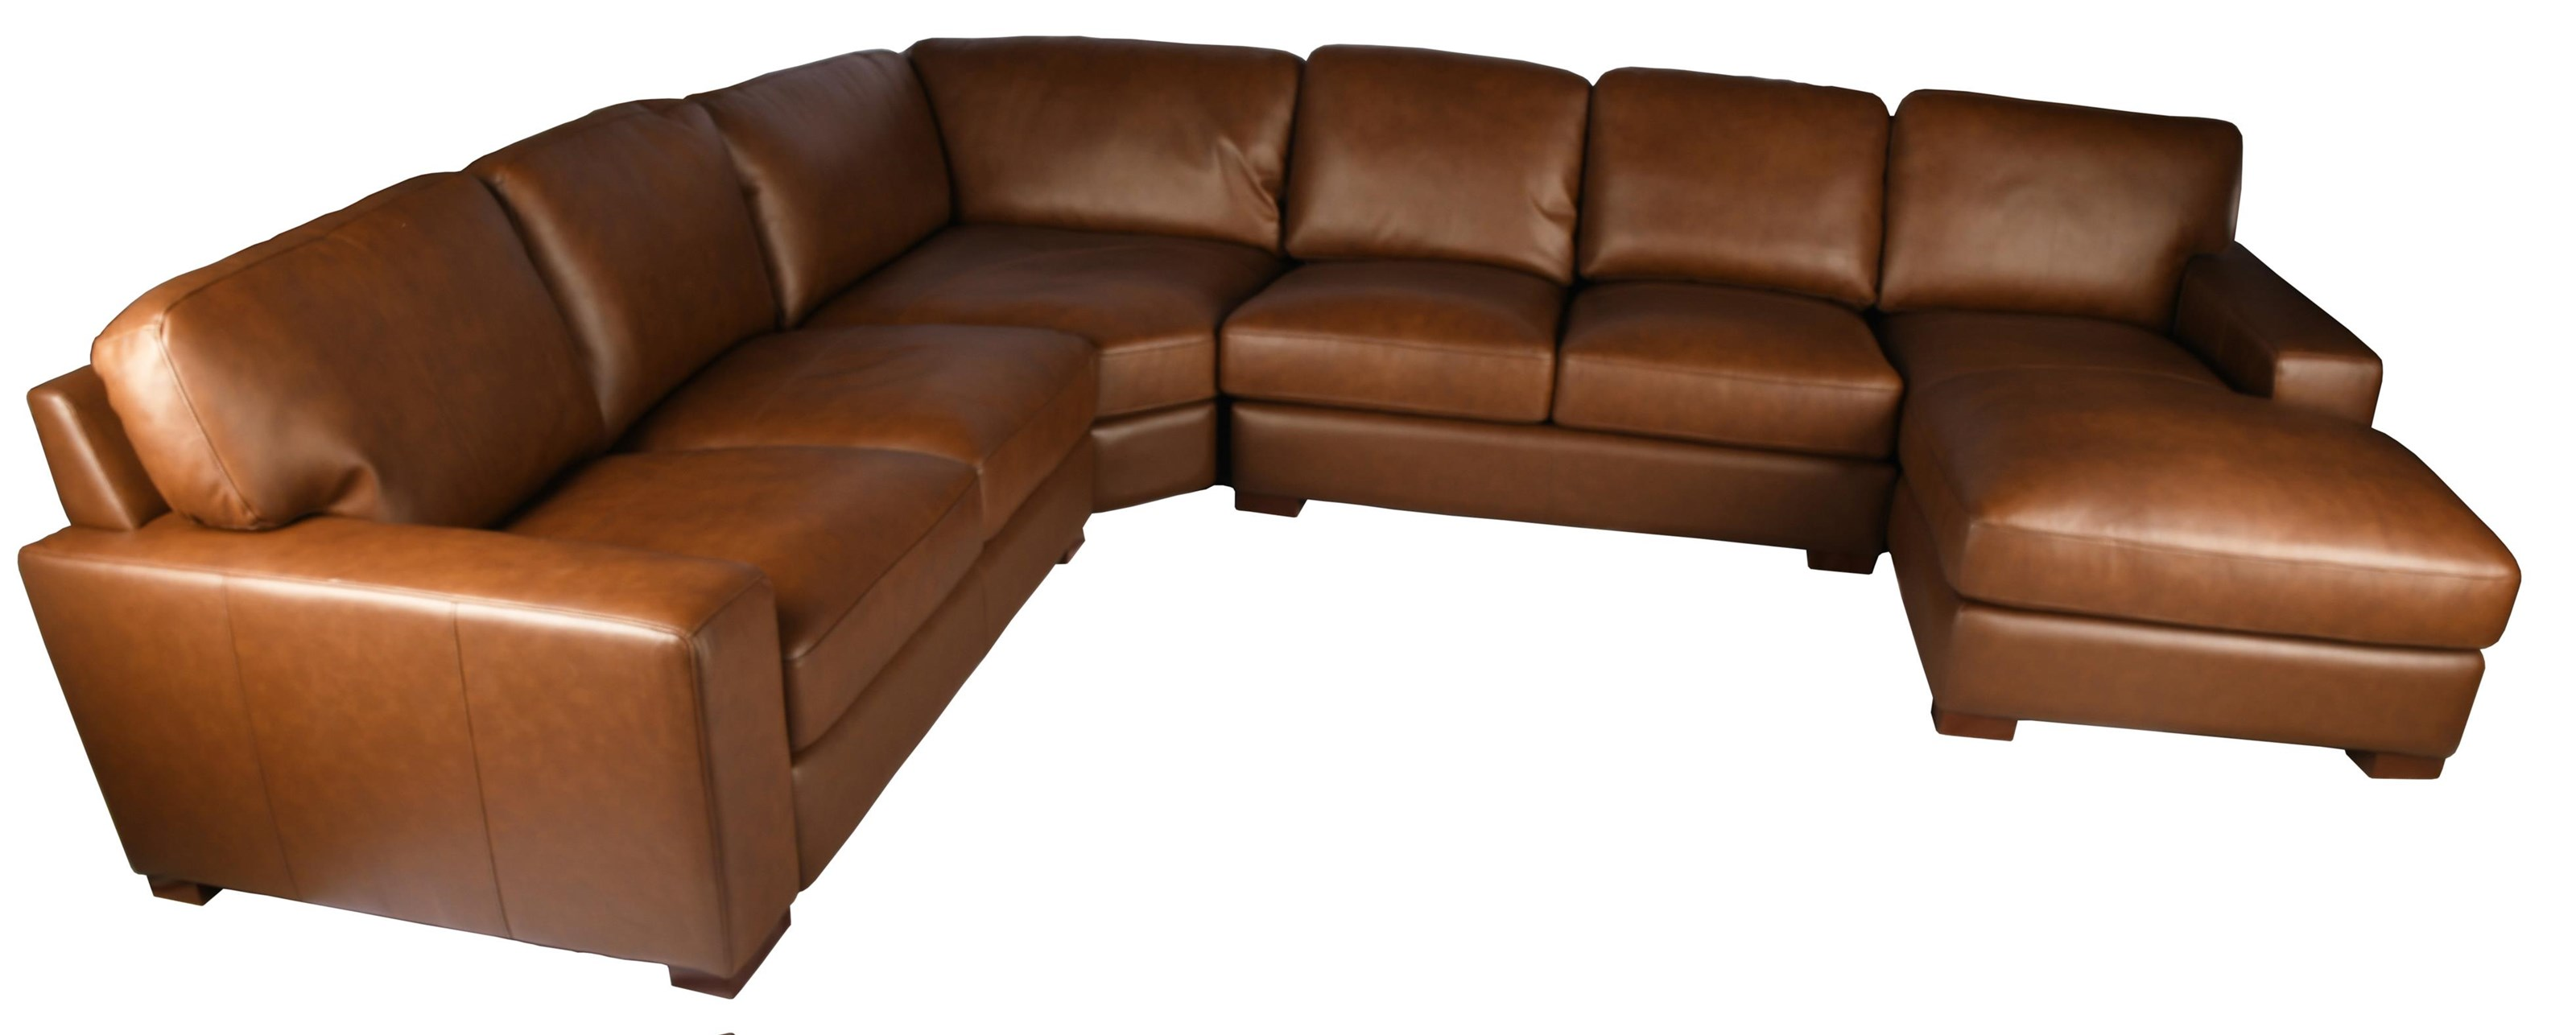 7322 Leather Sectional at Bennett's Furniture and Mattresses